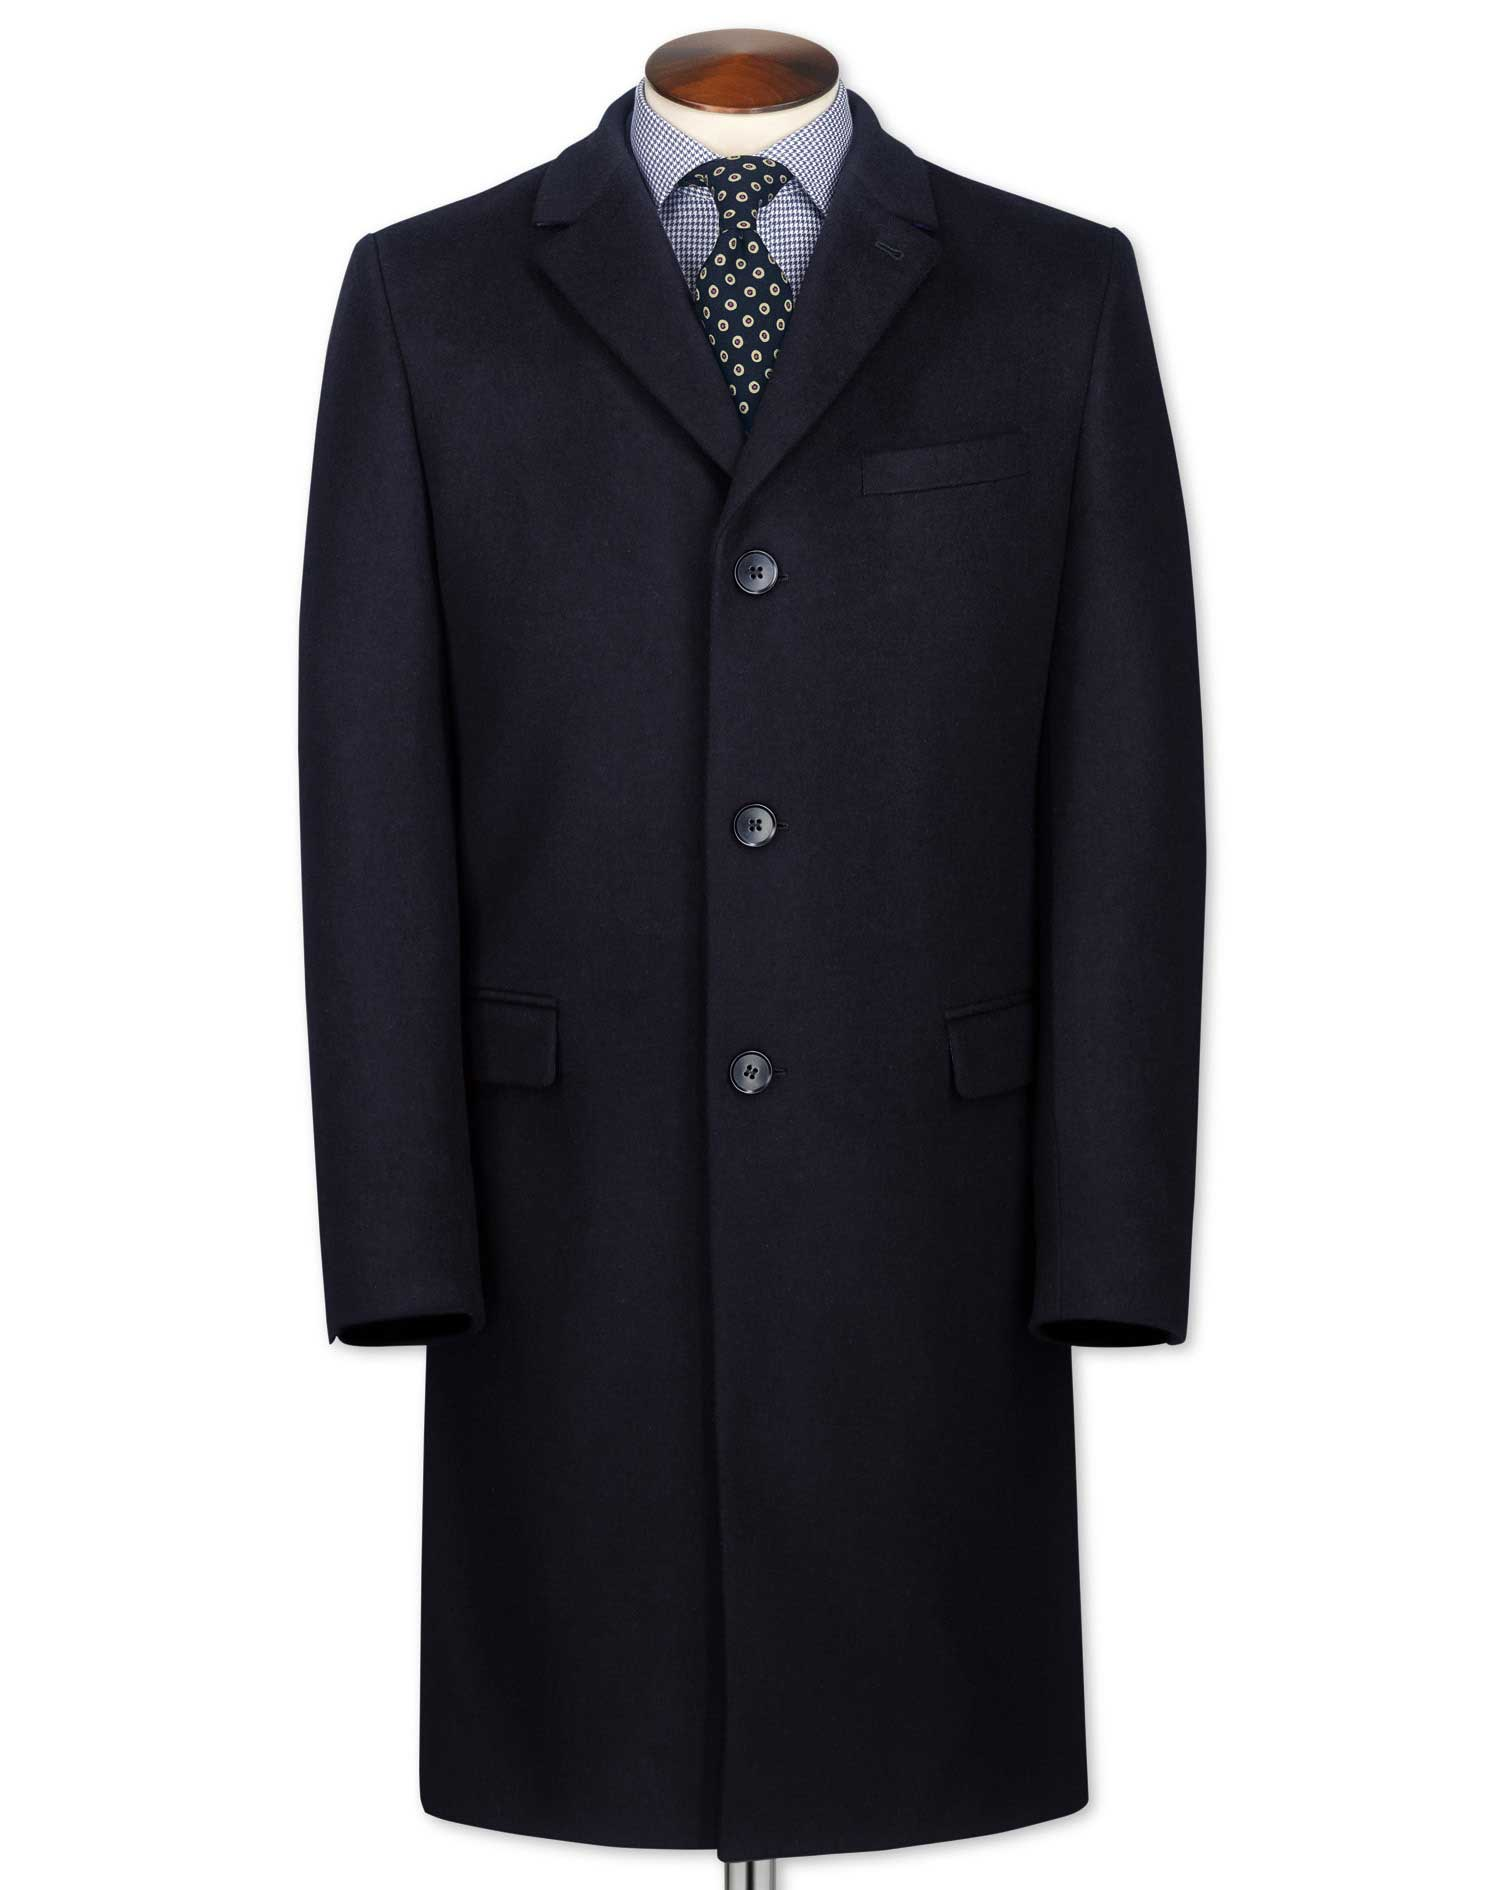 Classic Fit Navy Wool and Cashmere Overcoat Size 36 Regular by Charles Tyrwhitt